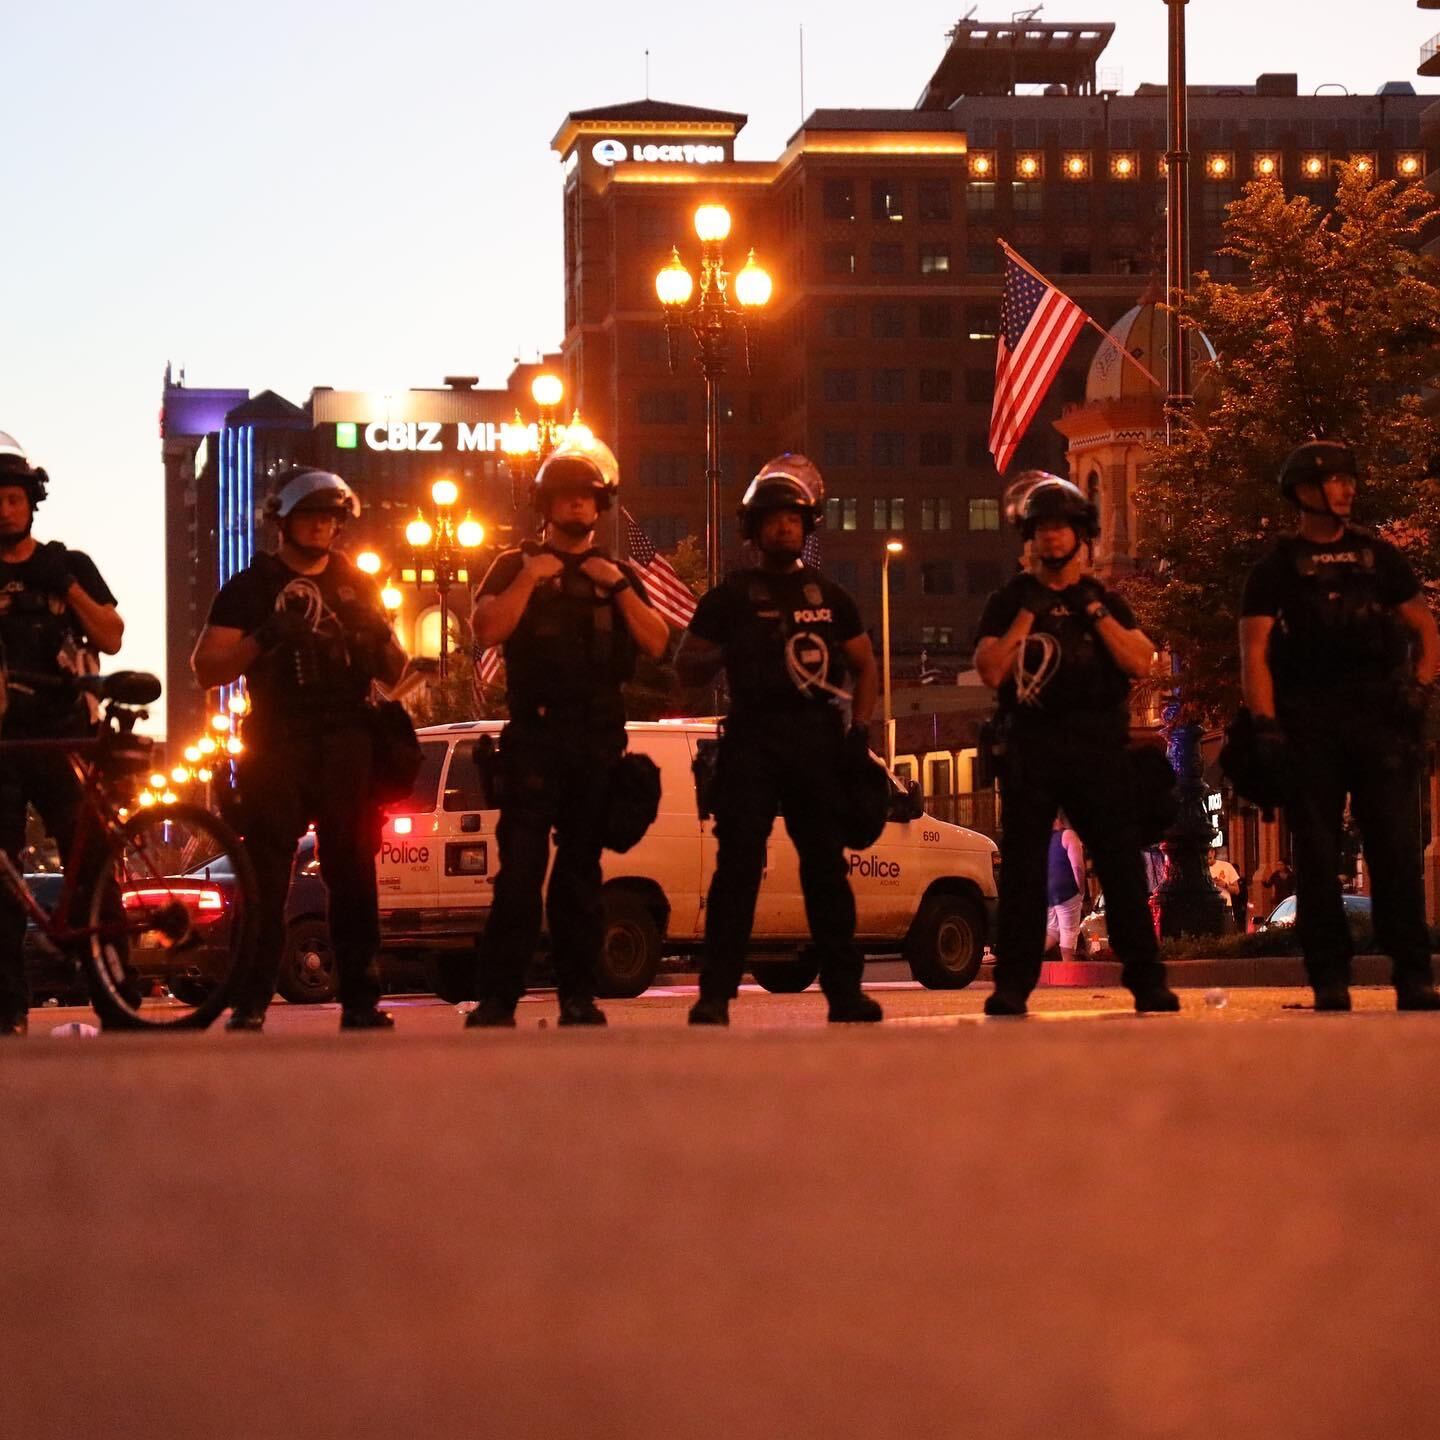 Police during protest